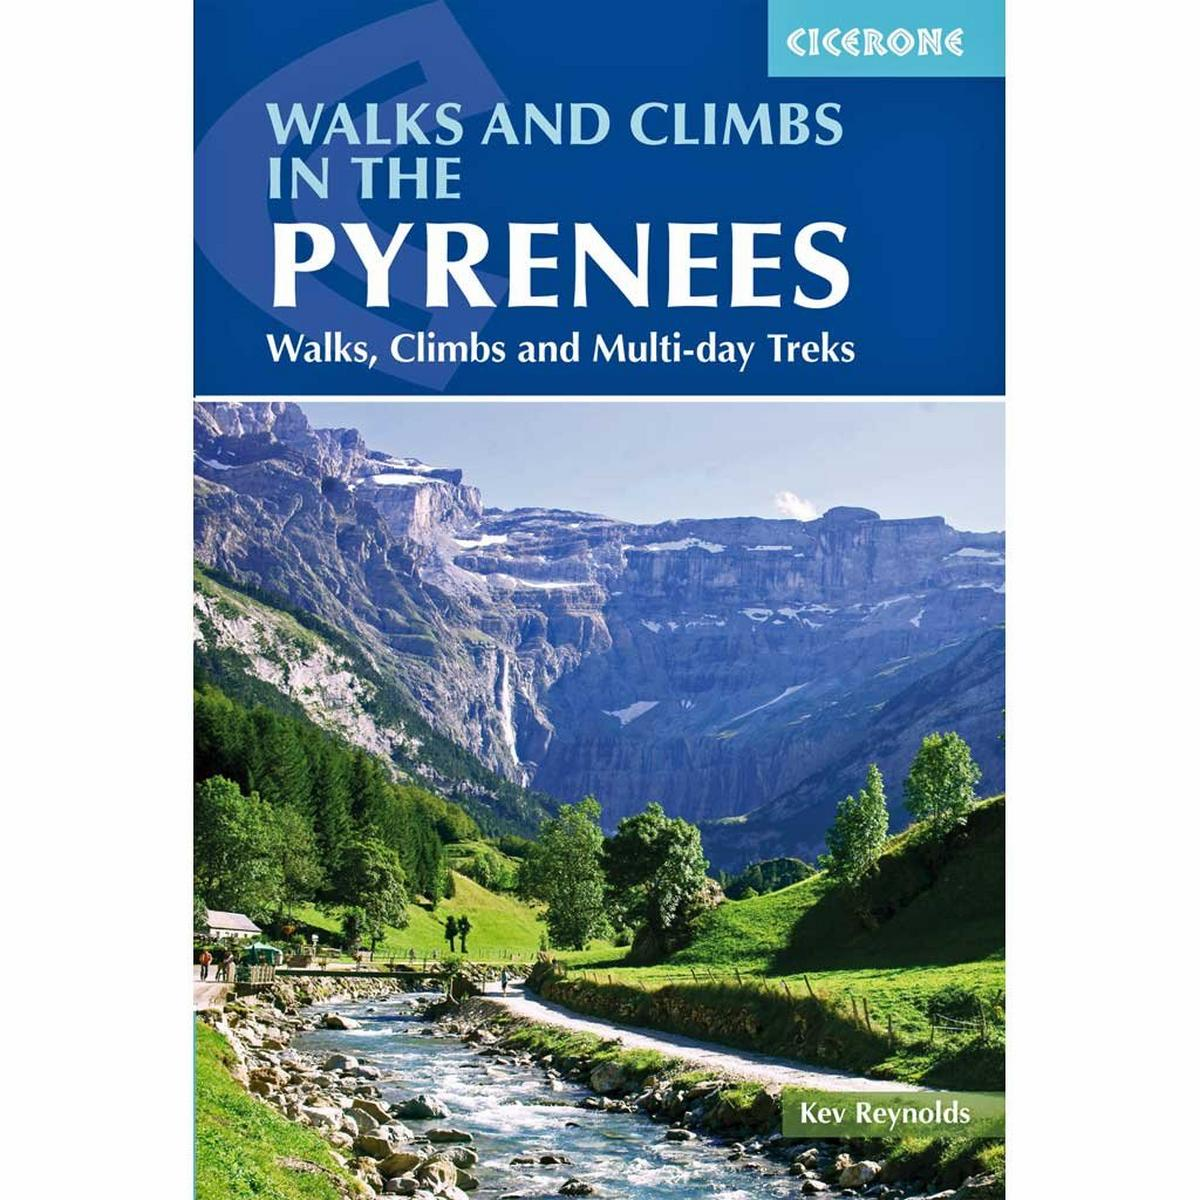 Cicerone Guide Book: Walks and Climbs in the Pyrenees